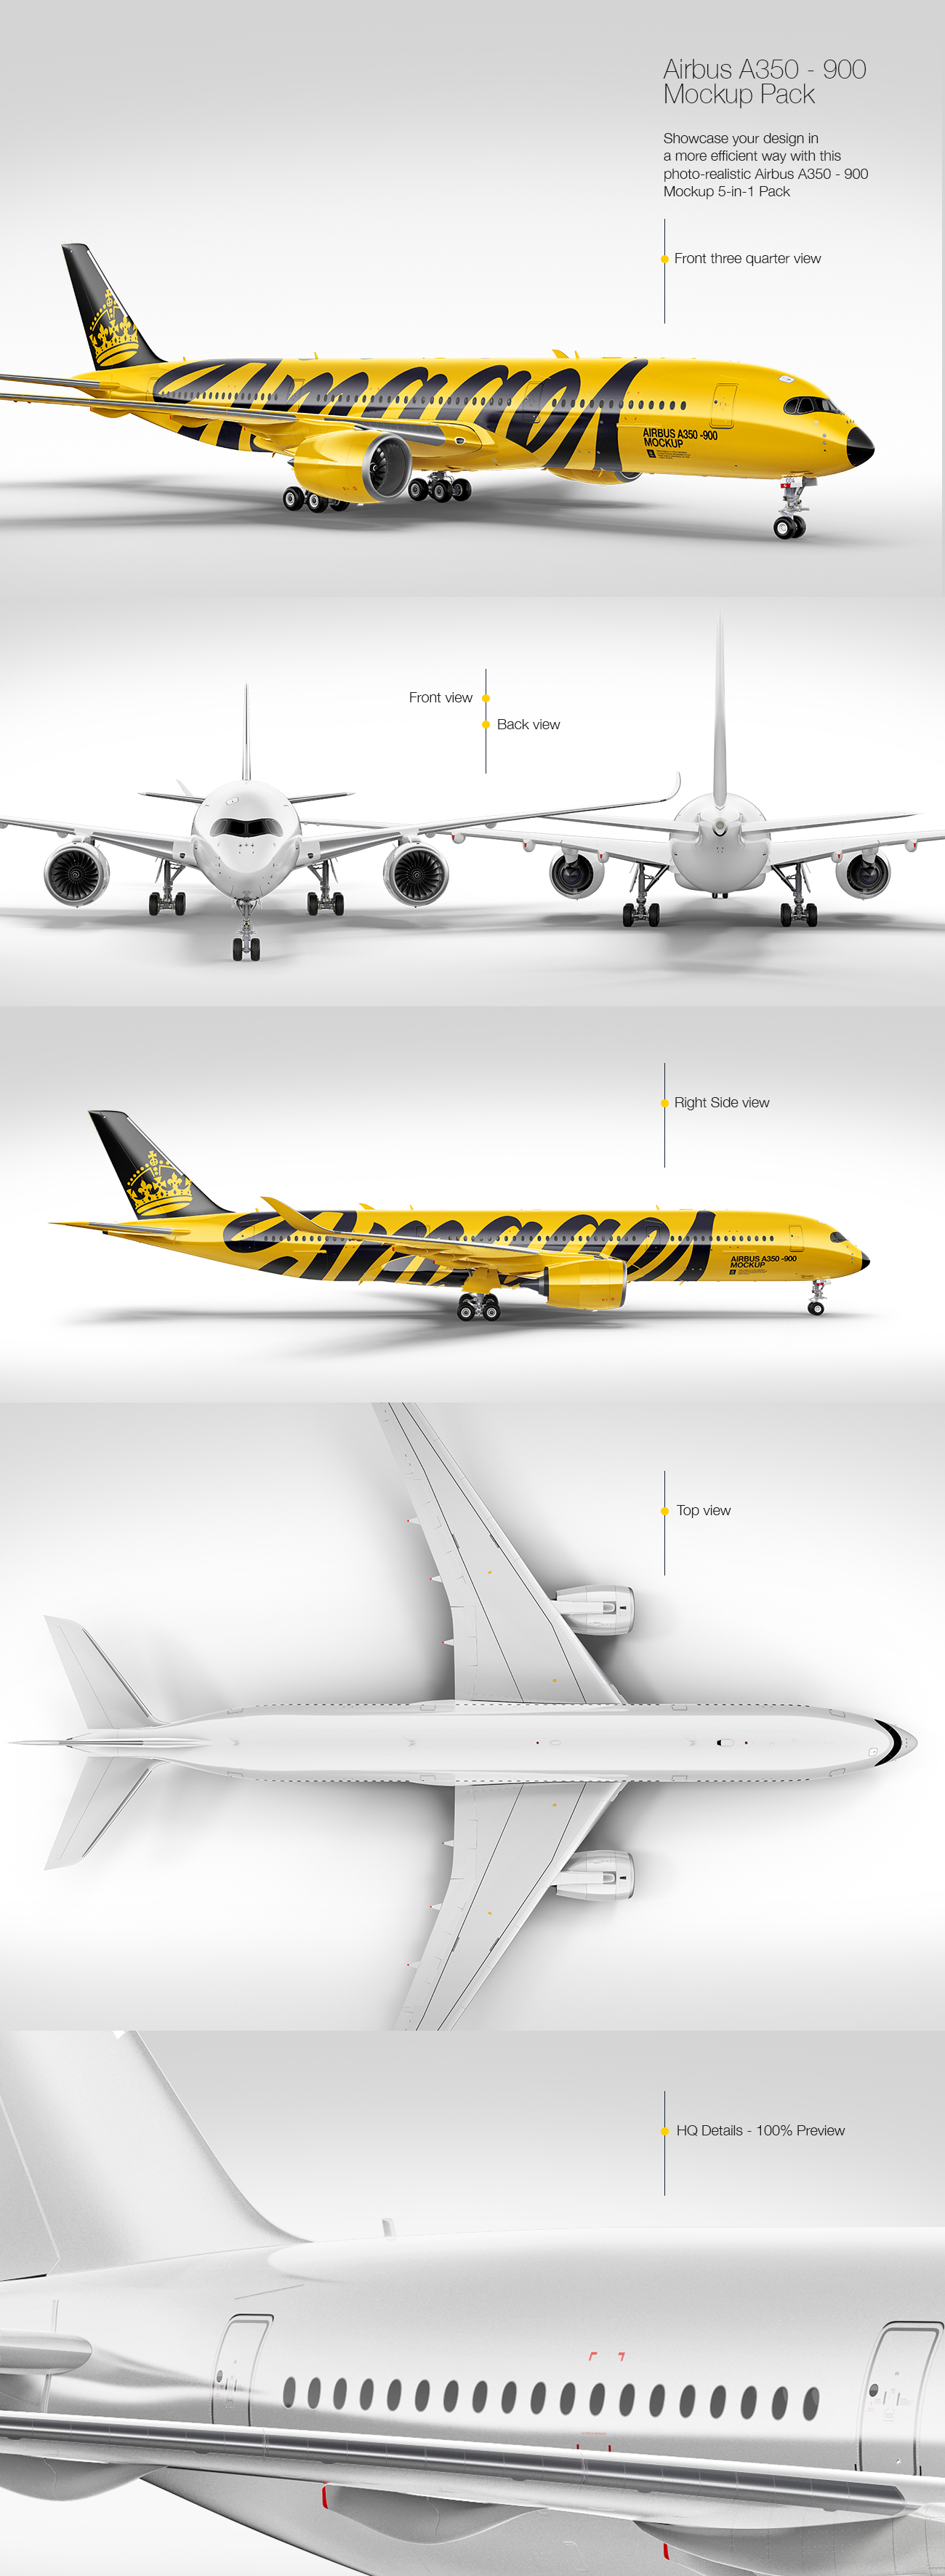 Airbus A 350-900 Mockup Pack